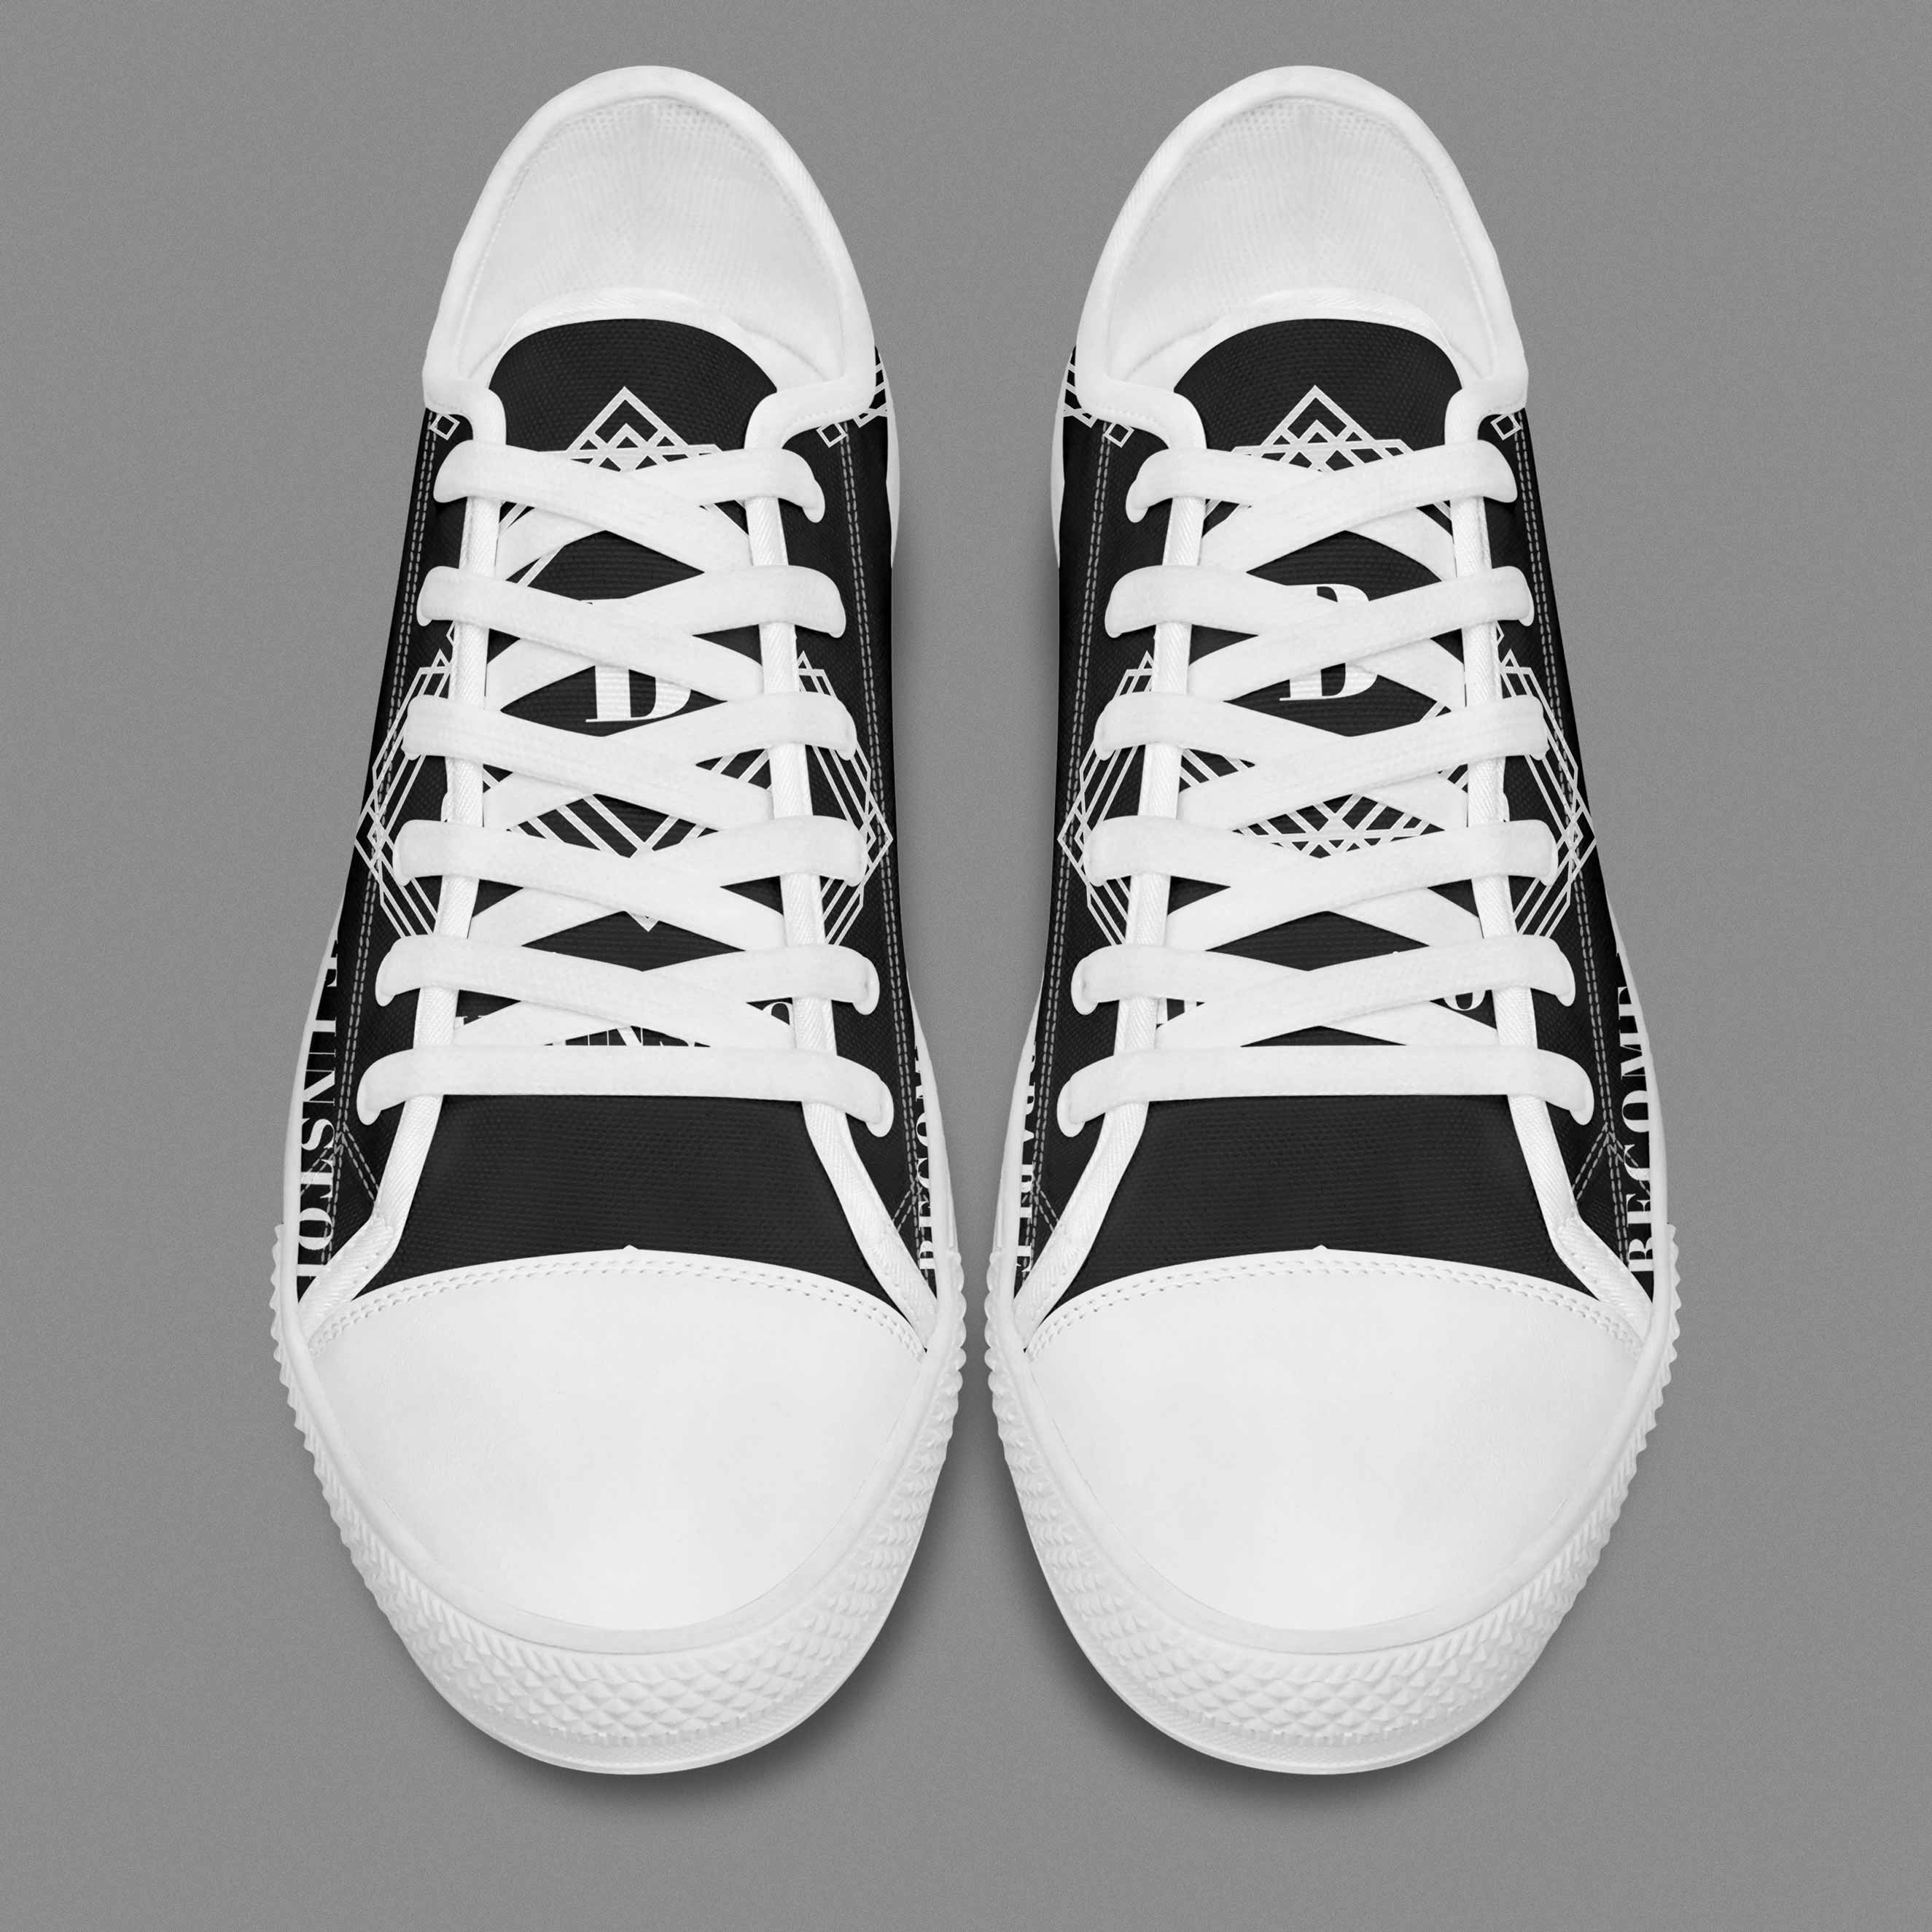 6 Colors Custom Leisure Style Casual Shoes For Kids Manufacture